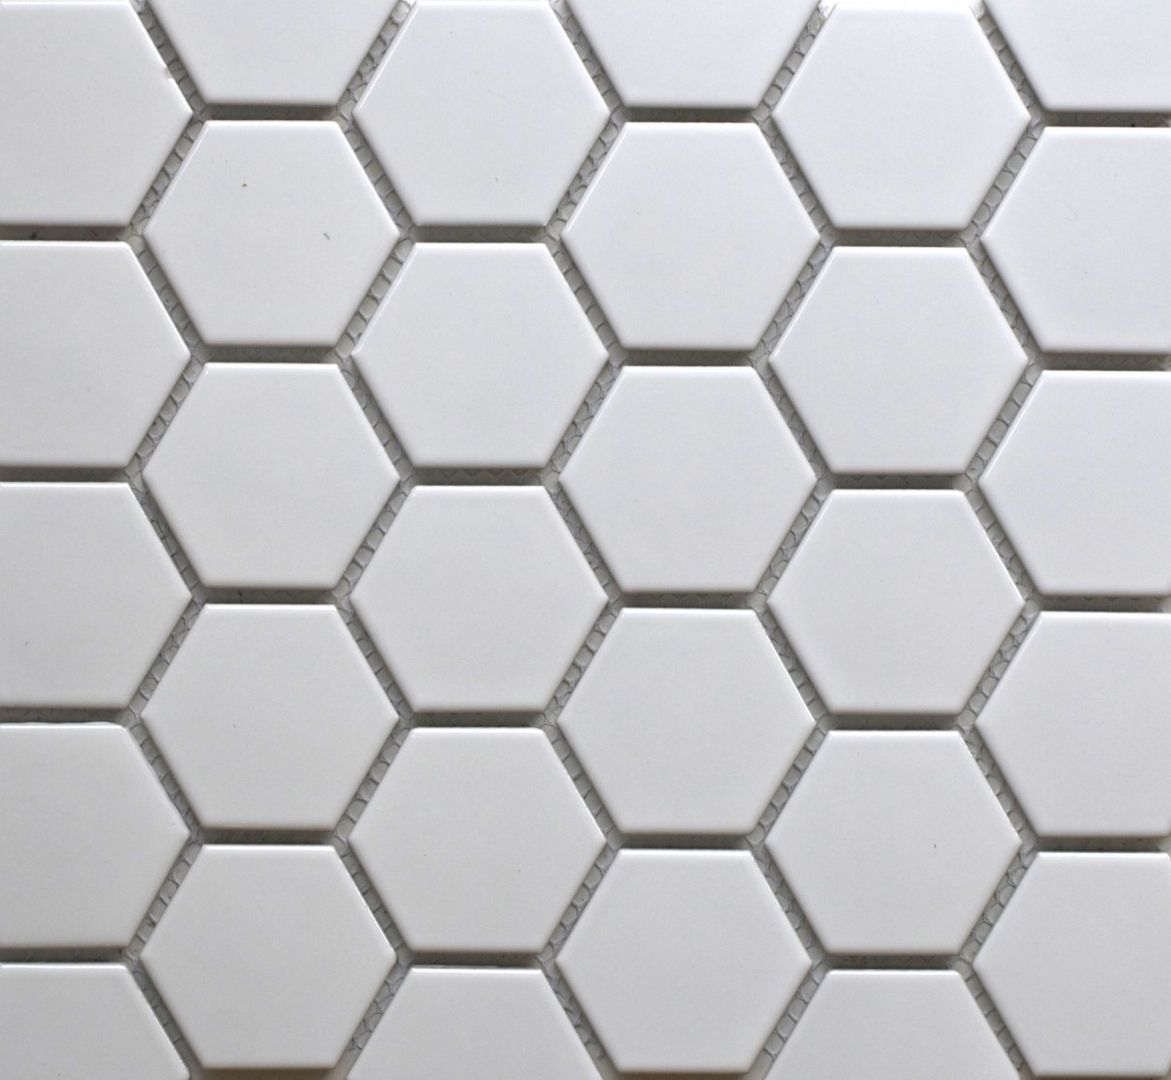 Hexagon Tile Floor Patterns Simple White Hexagonal Tiles Are A Design Classic And Can Be Used